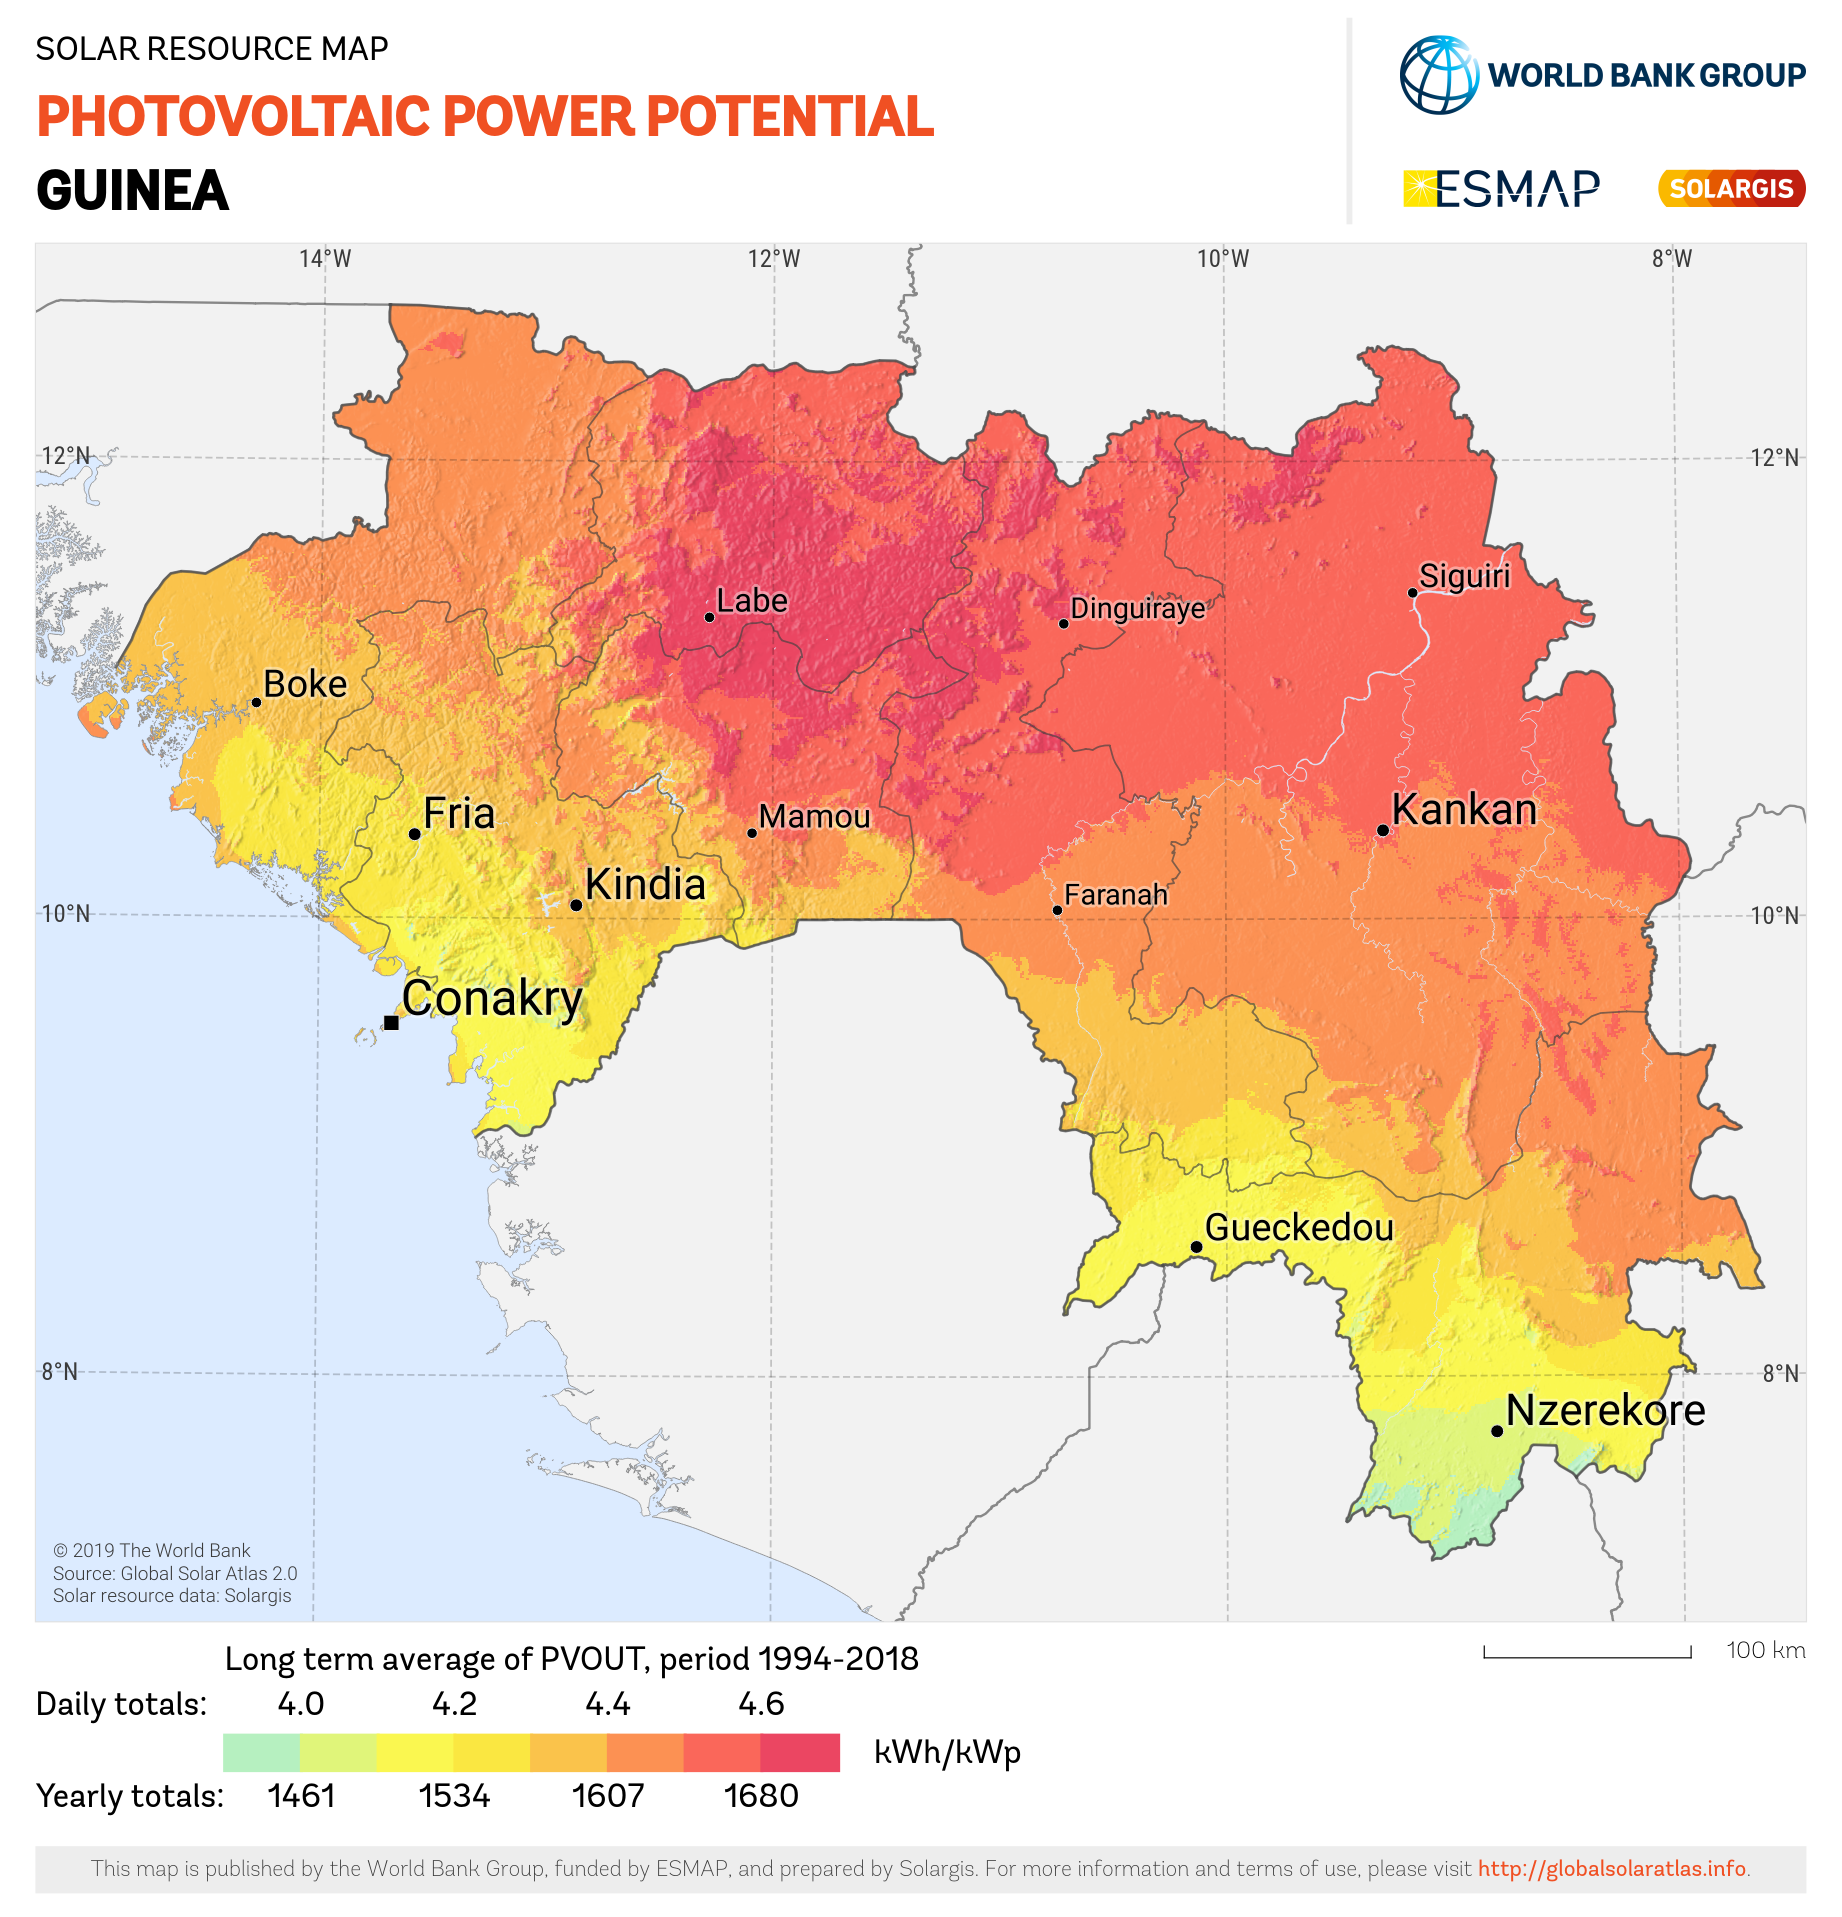 SOLARGIS_Photovoltaic Electricity Potential Guinea_PVOUT KWH per KWp